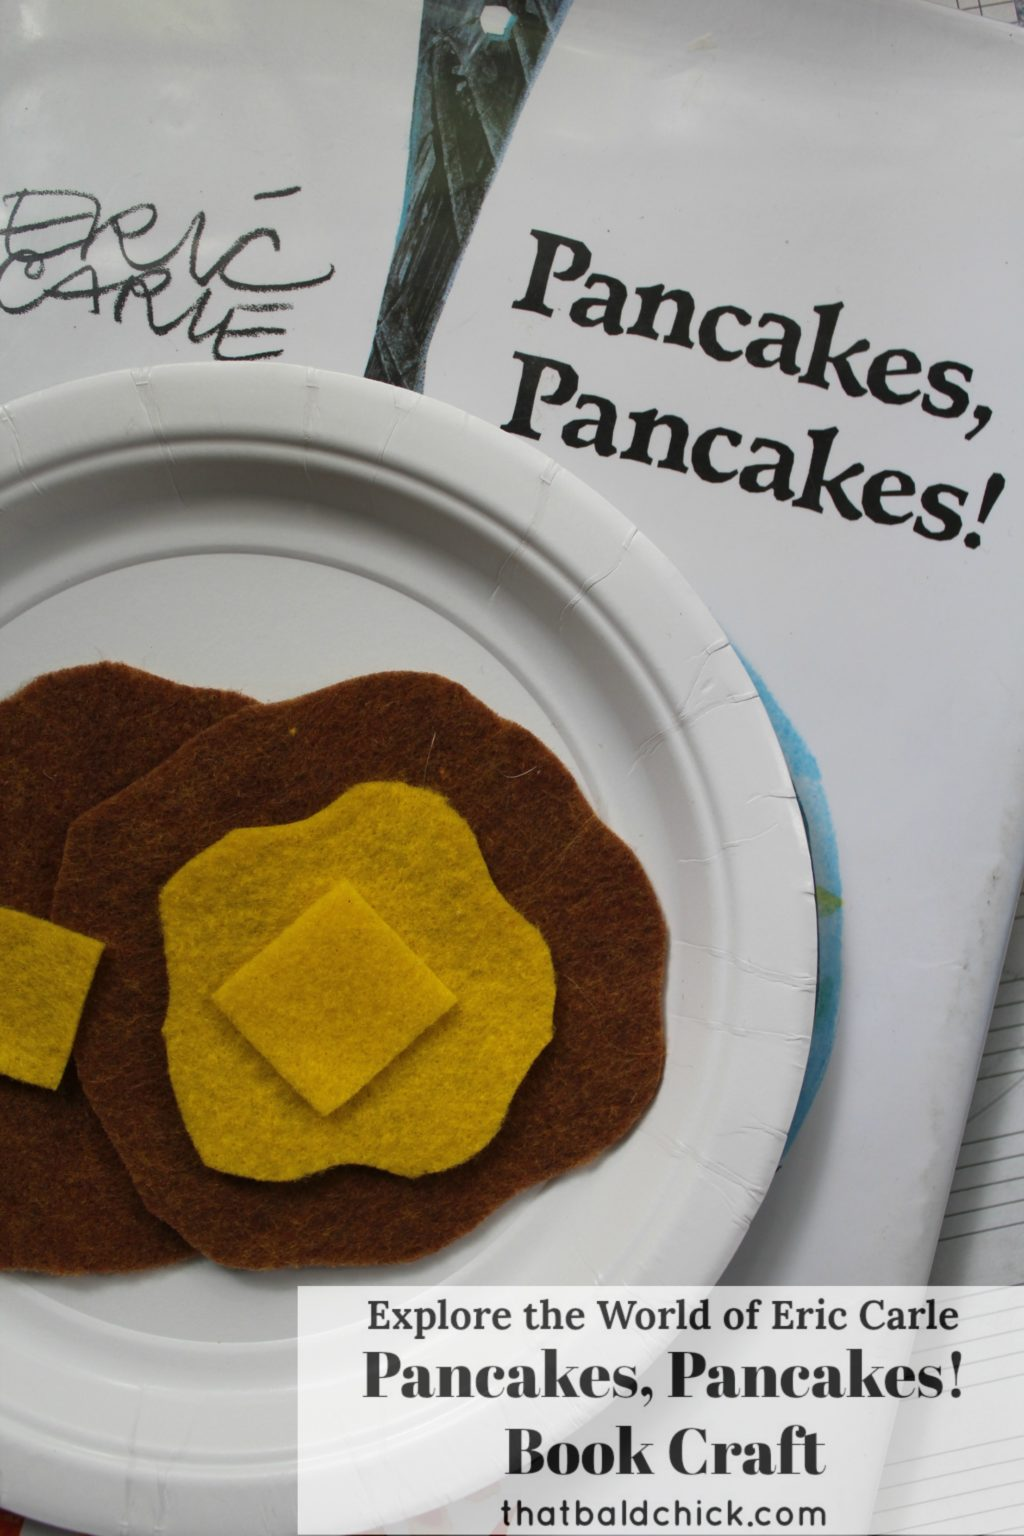 Explore the world of Eric Carle and make this fun Pancakes, Pancakes! Book Craft. Supply list and instructions at thatbaldchick.com